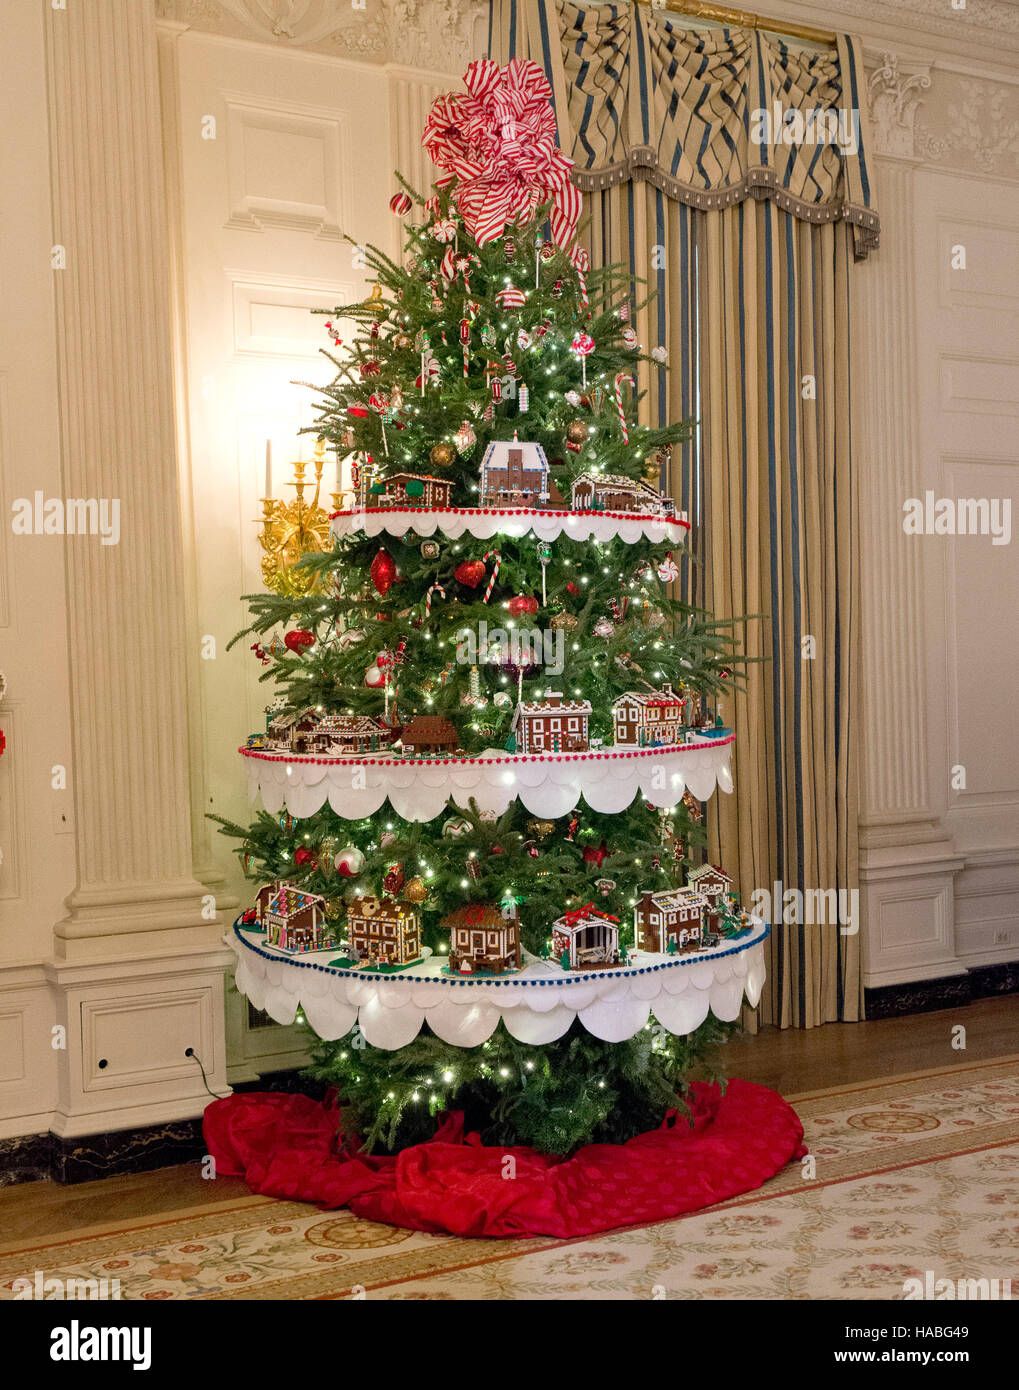 Holiday decorations at the white house are displayed during a press - Stock Photo The 2016 White House Christmas Decorations Are Previewed For The Press At The White House In Washington Dc On Tuesday November 29 2016